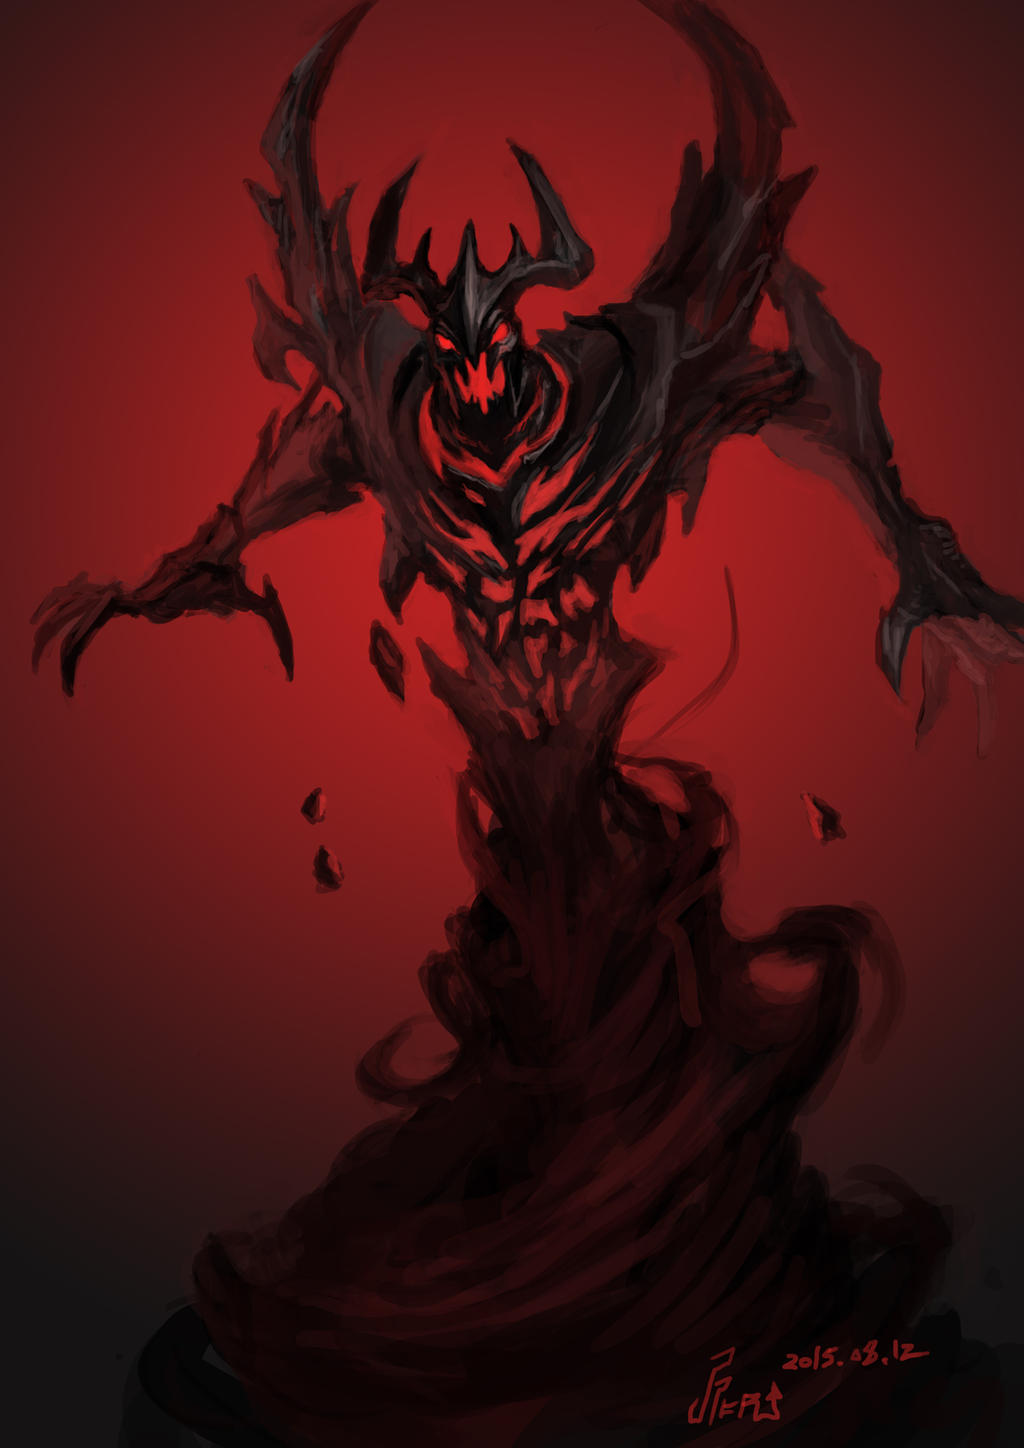 Shadow Fiend Wallpaper Hd Android Labzada